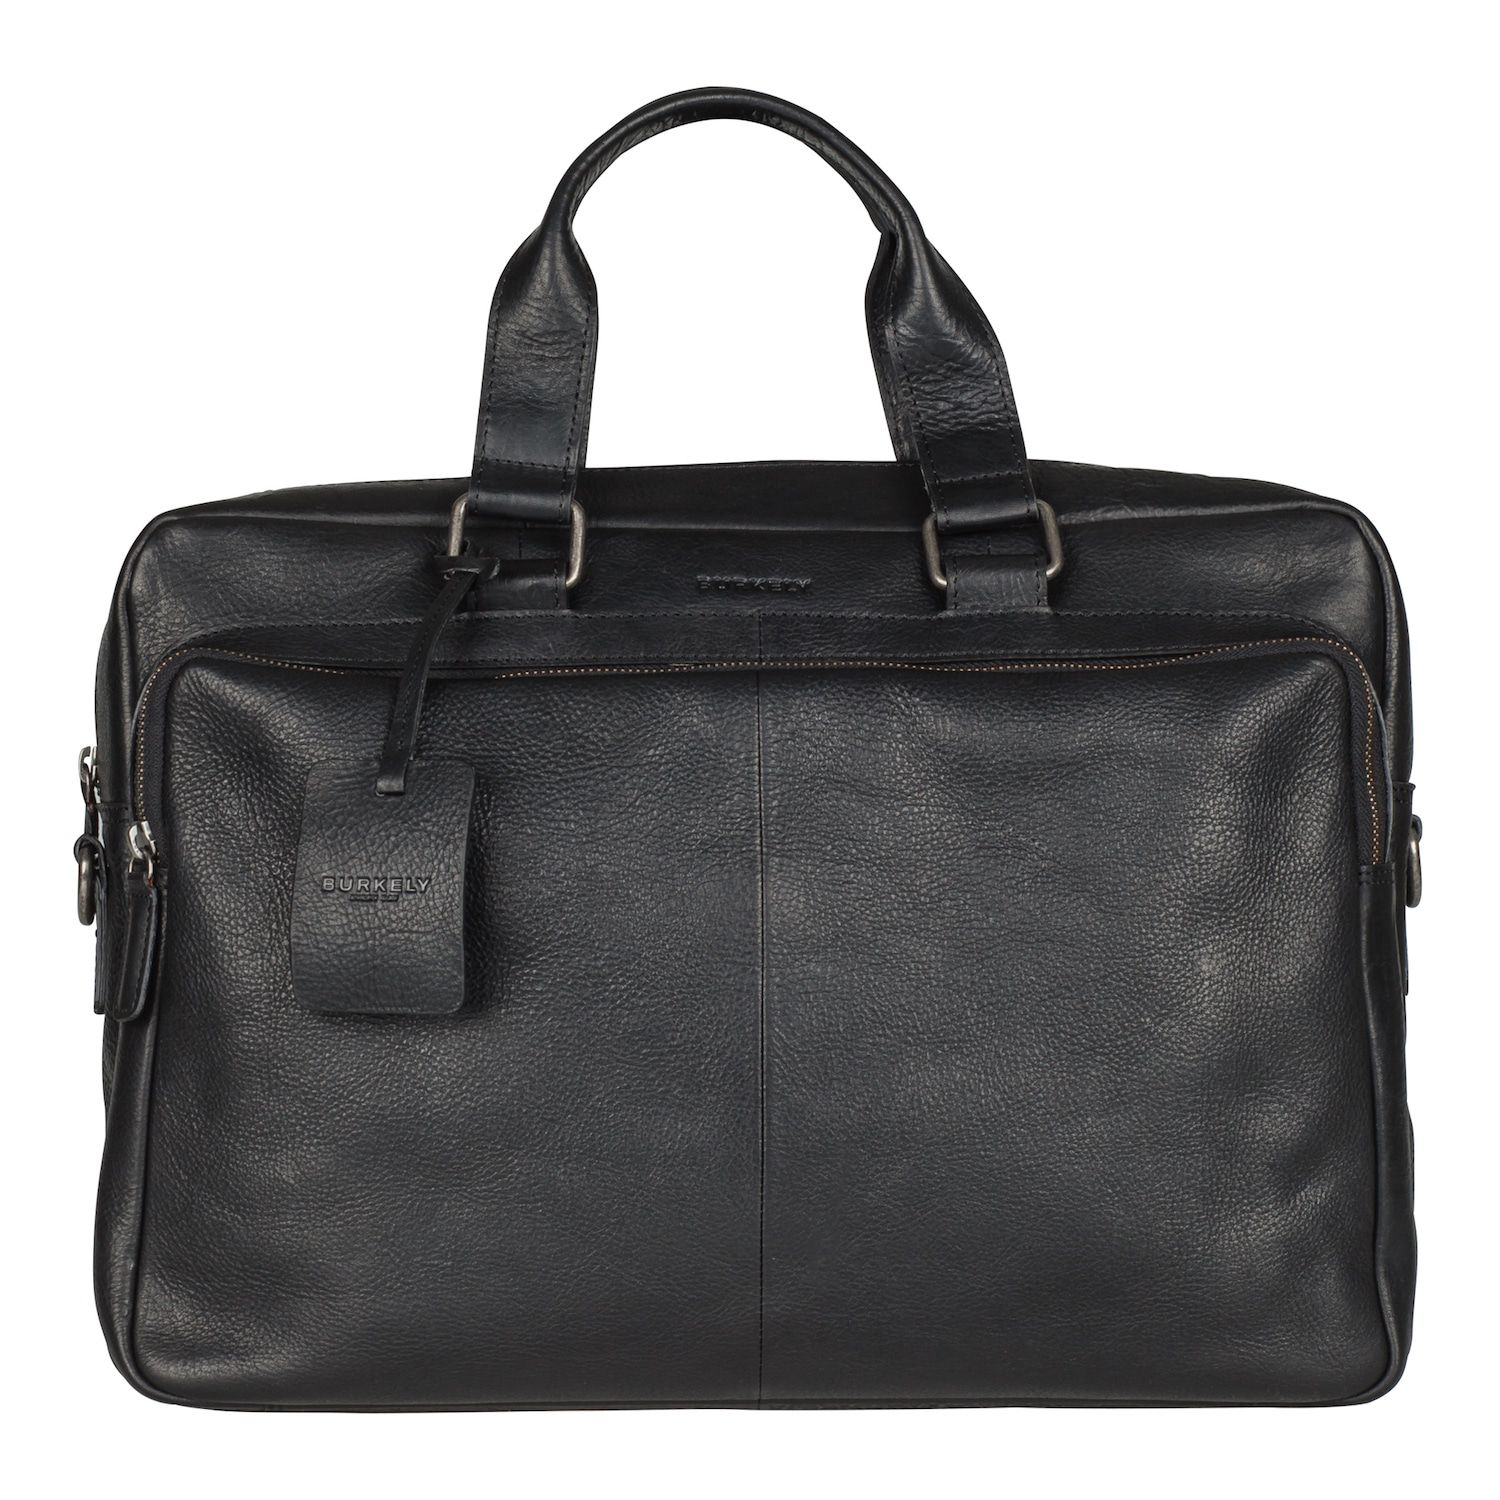 Burkely Antique Avery Workbag Black 15.6 inch